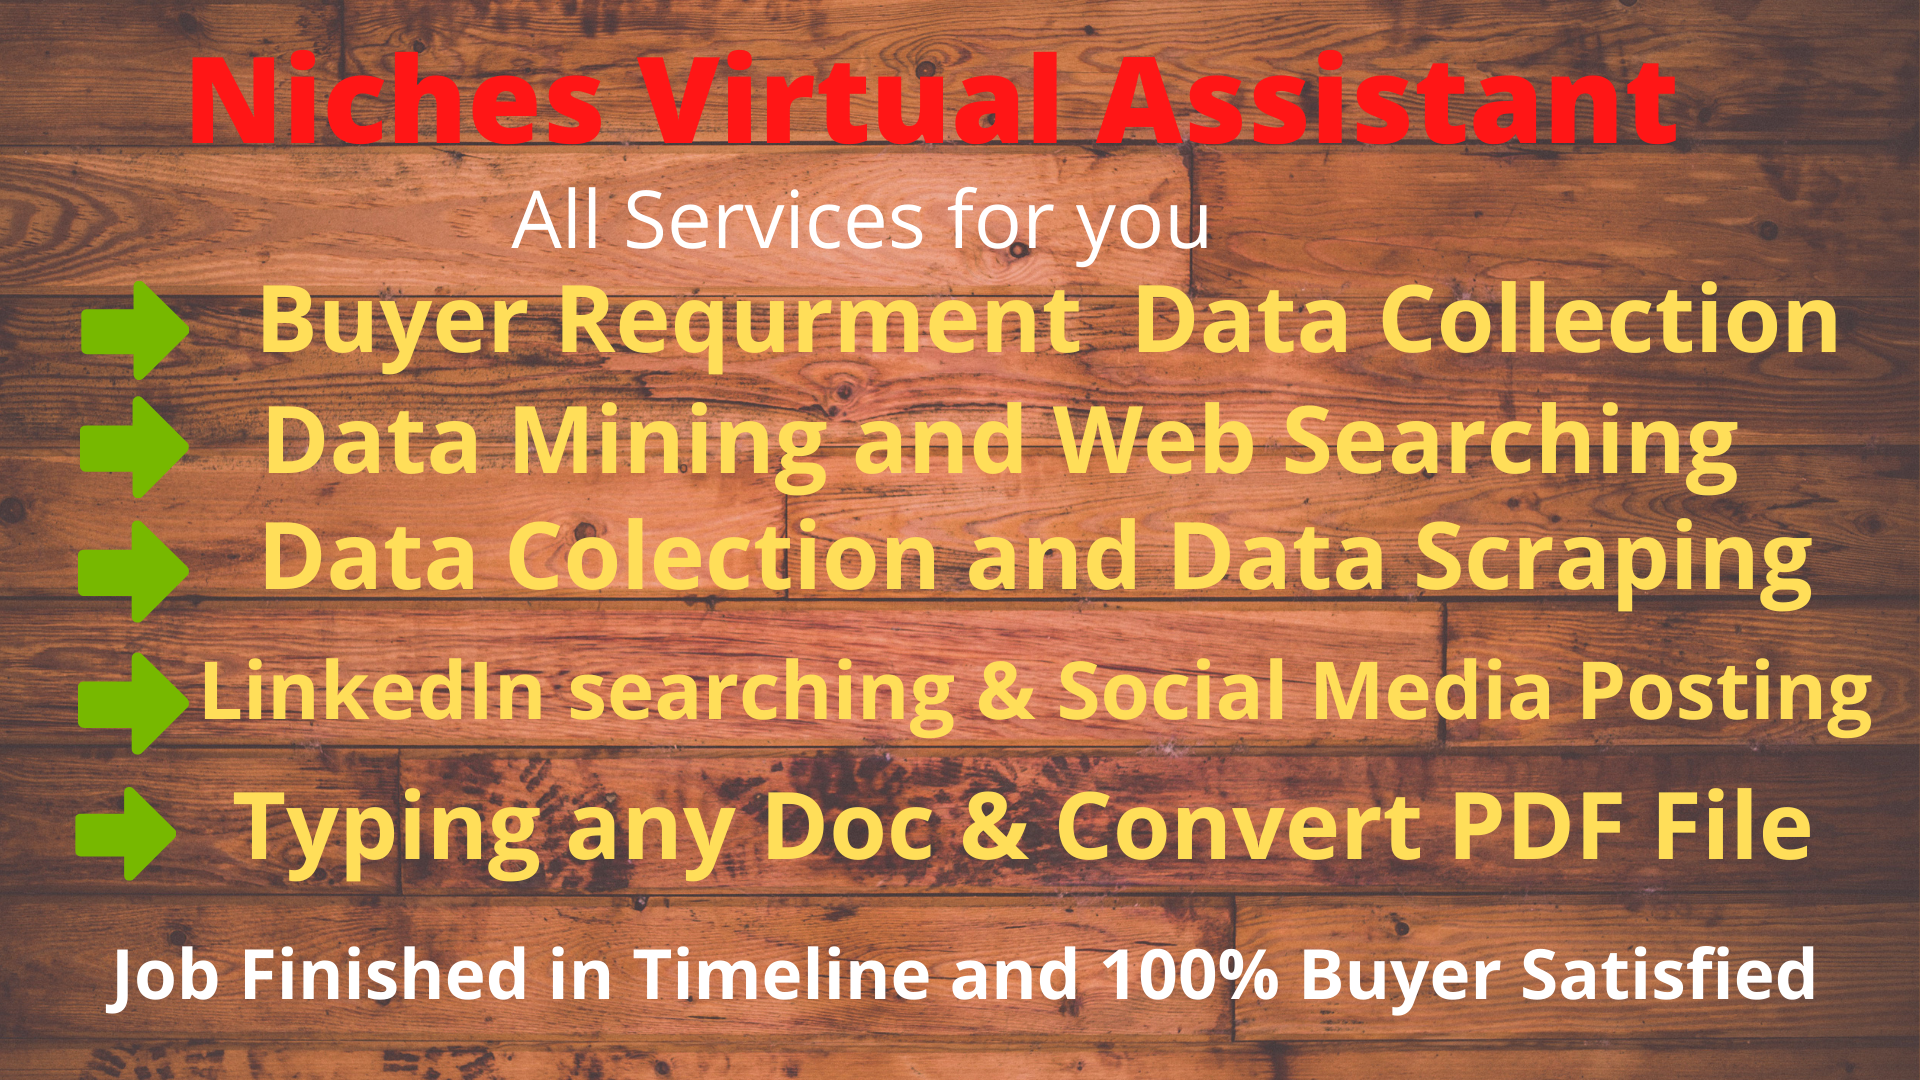 Virtual Assistant and LinkedIn Searching